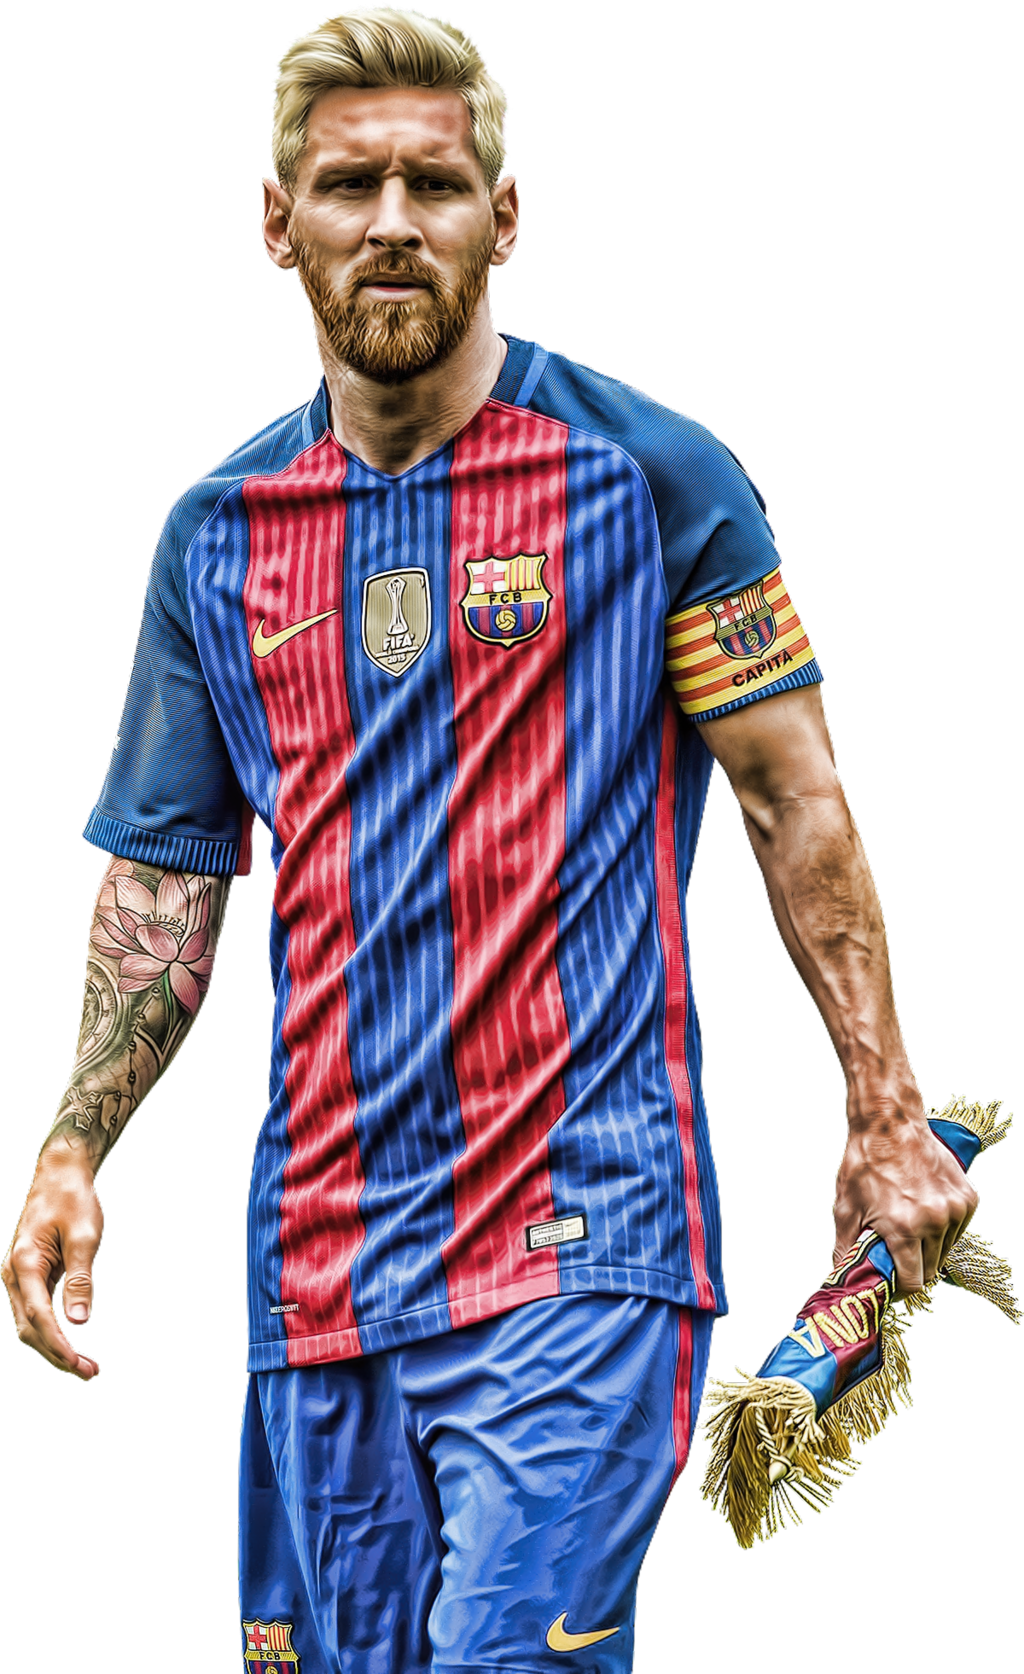 Lionel messi clipart 2018 picture royalty free Lionel Messi Png Barca 2017 2018 picture royalty free